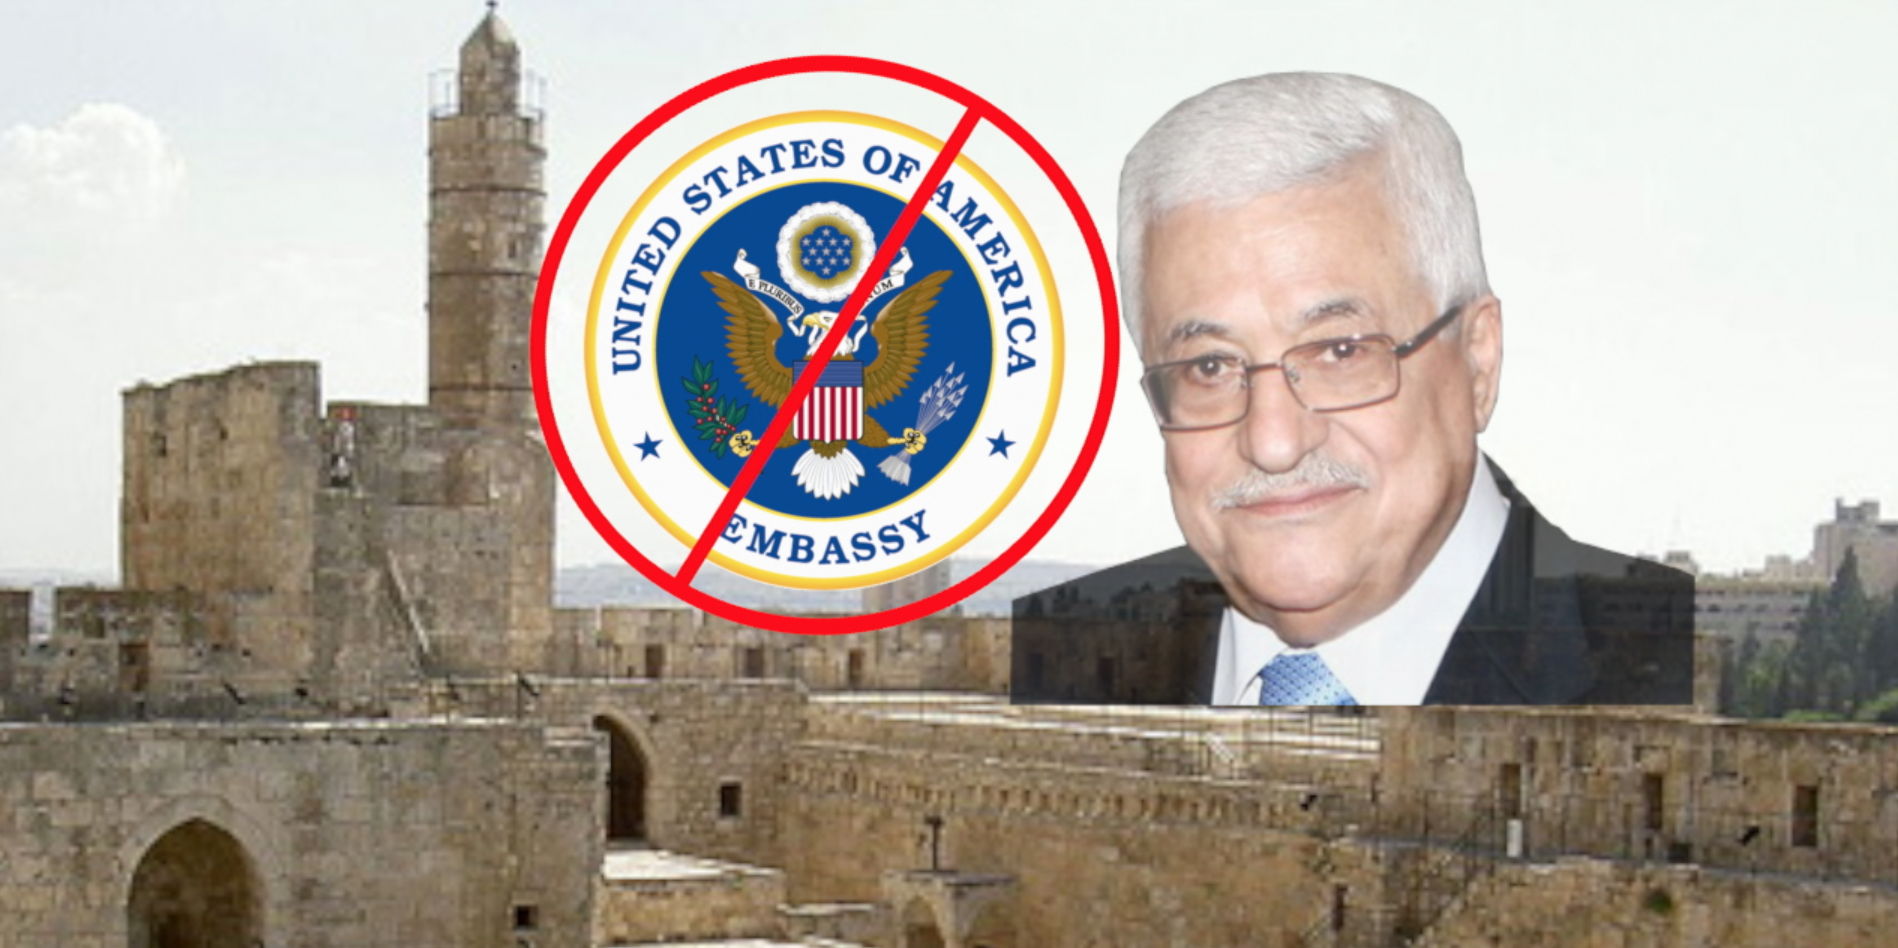 Abbas Won't Allow Embassy Move